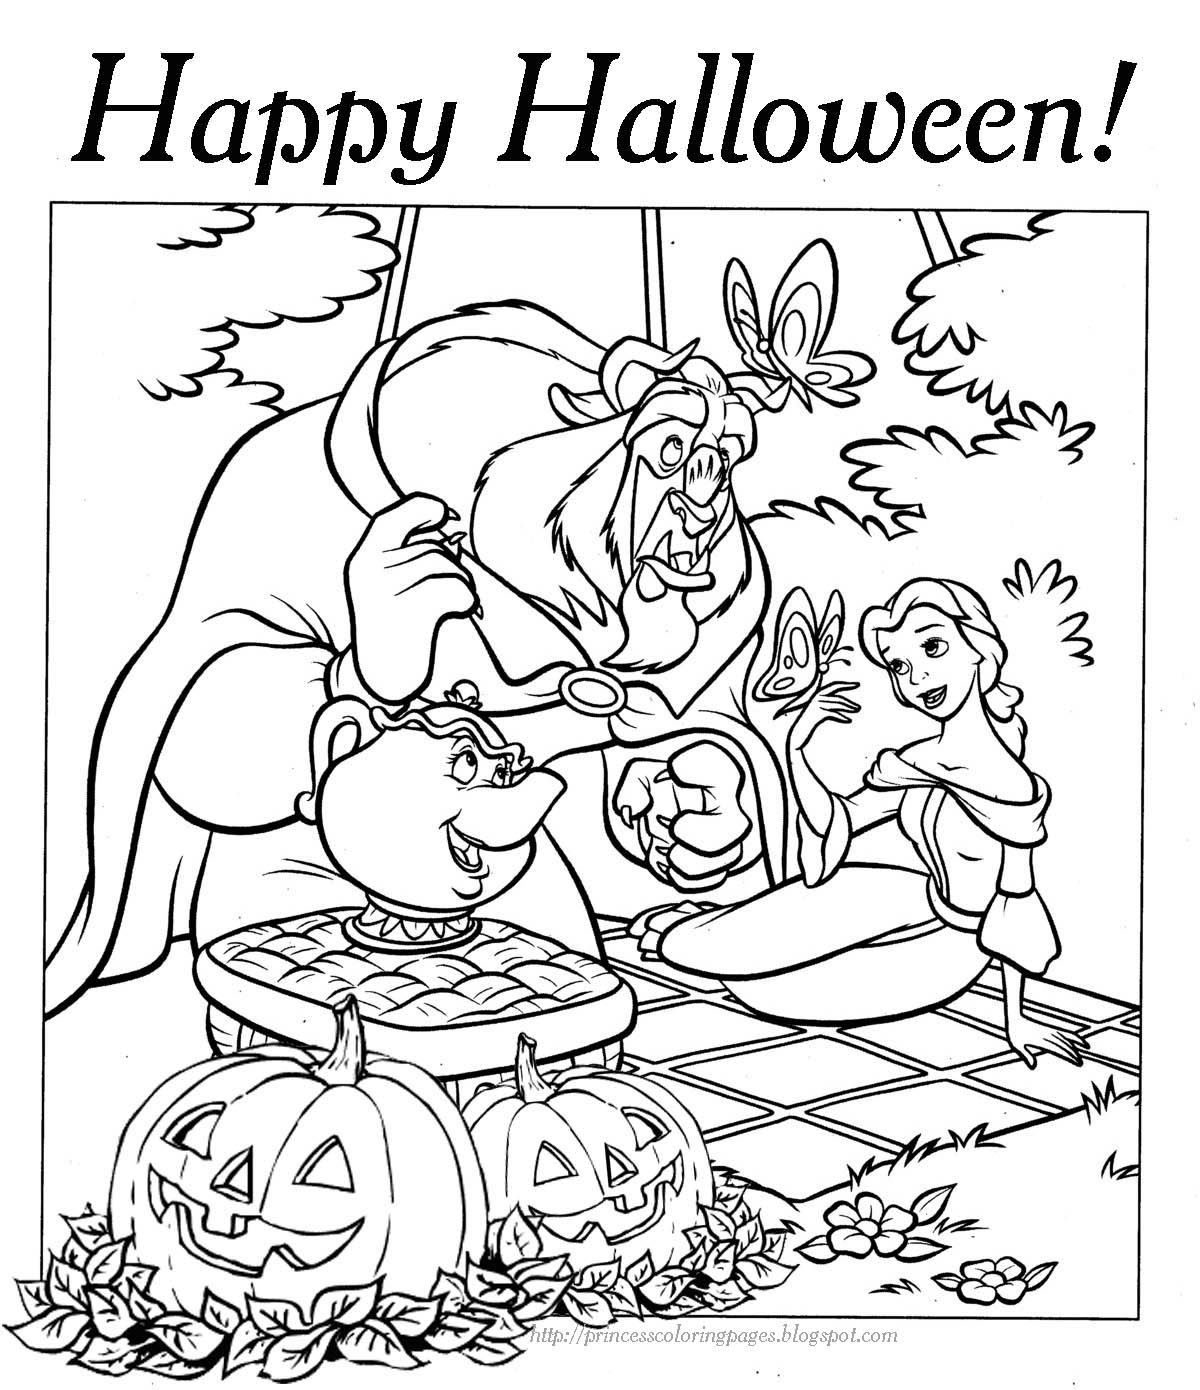 free barbie halloween coloring pages - photo#17